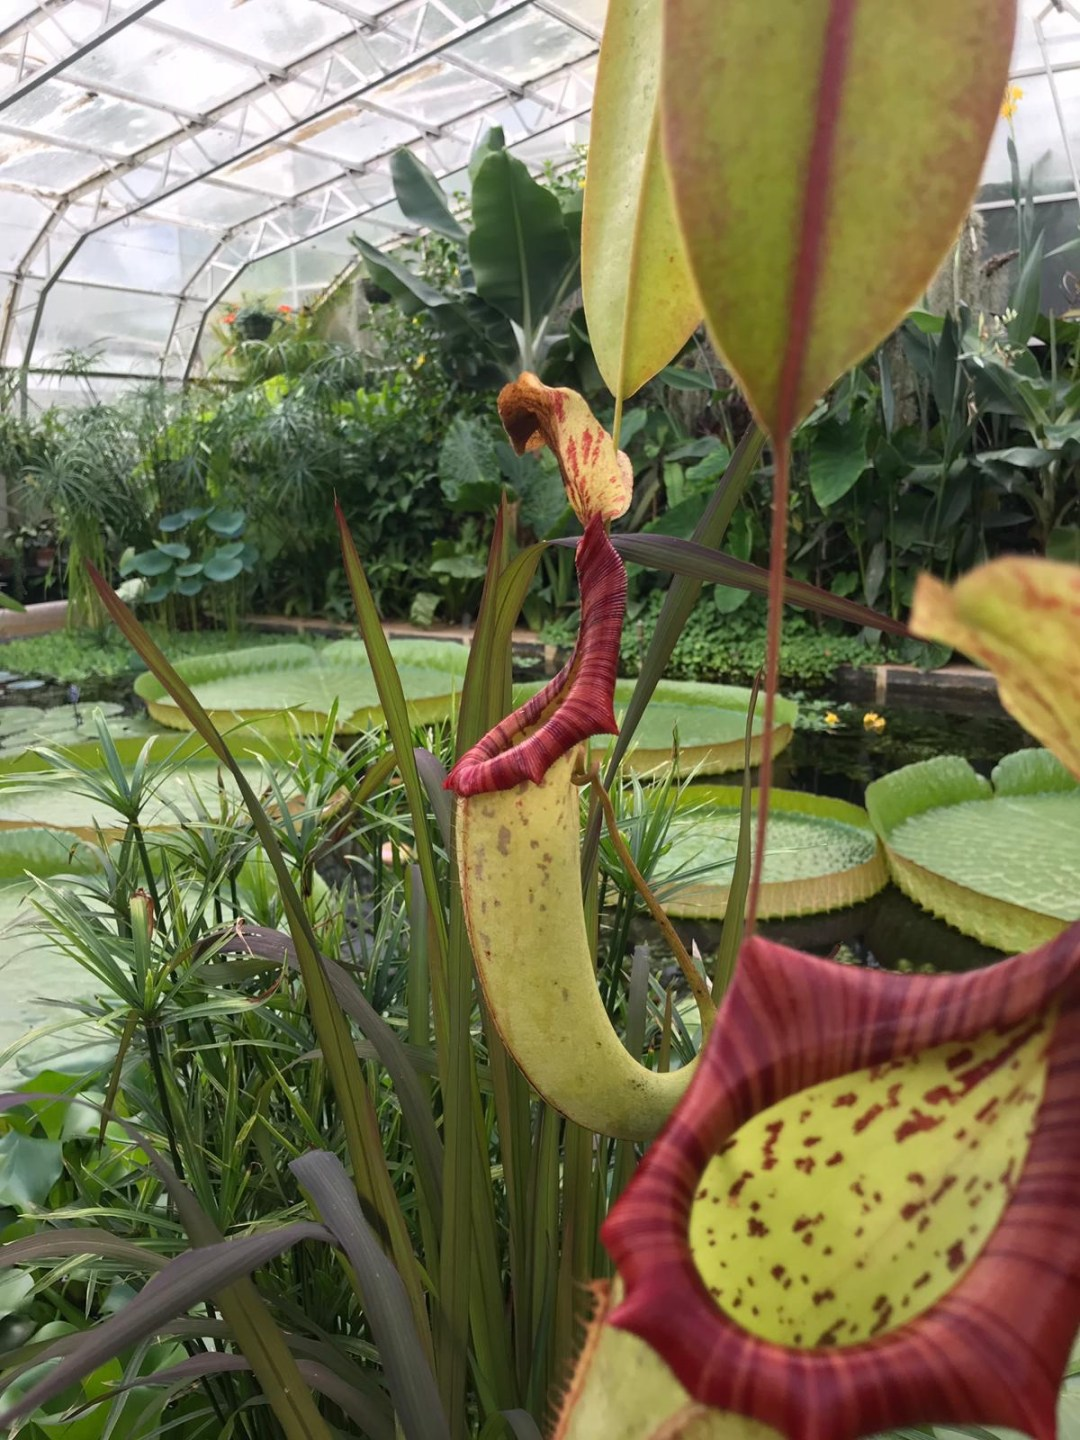 Green and red pitcher plants and giant water lily pads in greenhouse